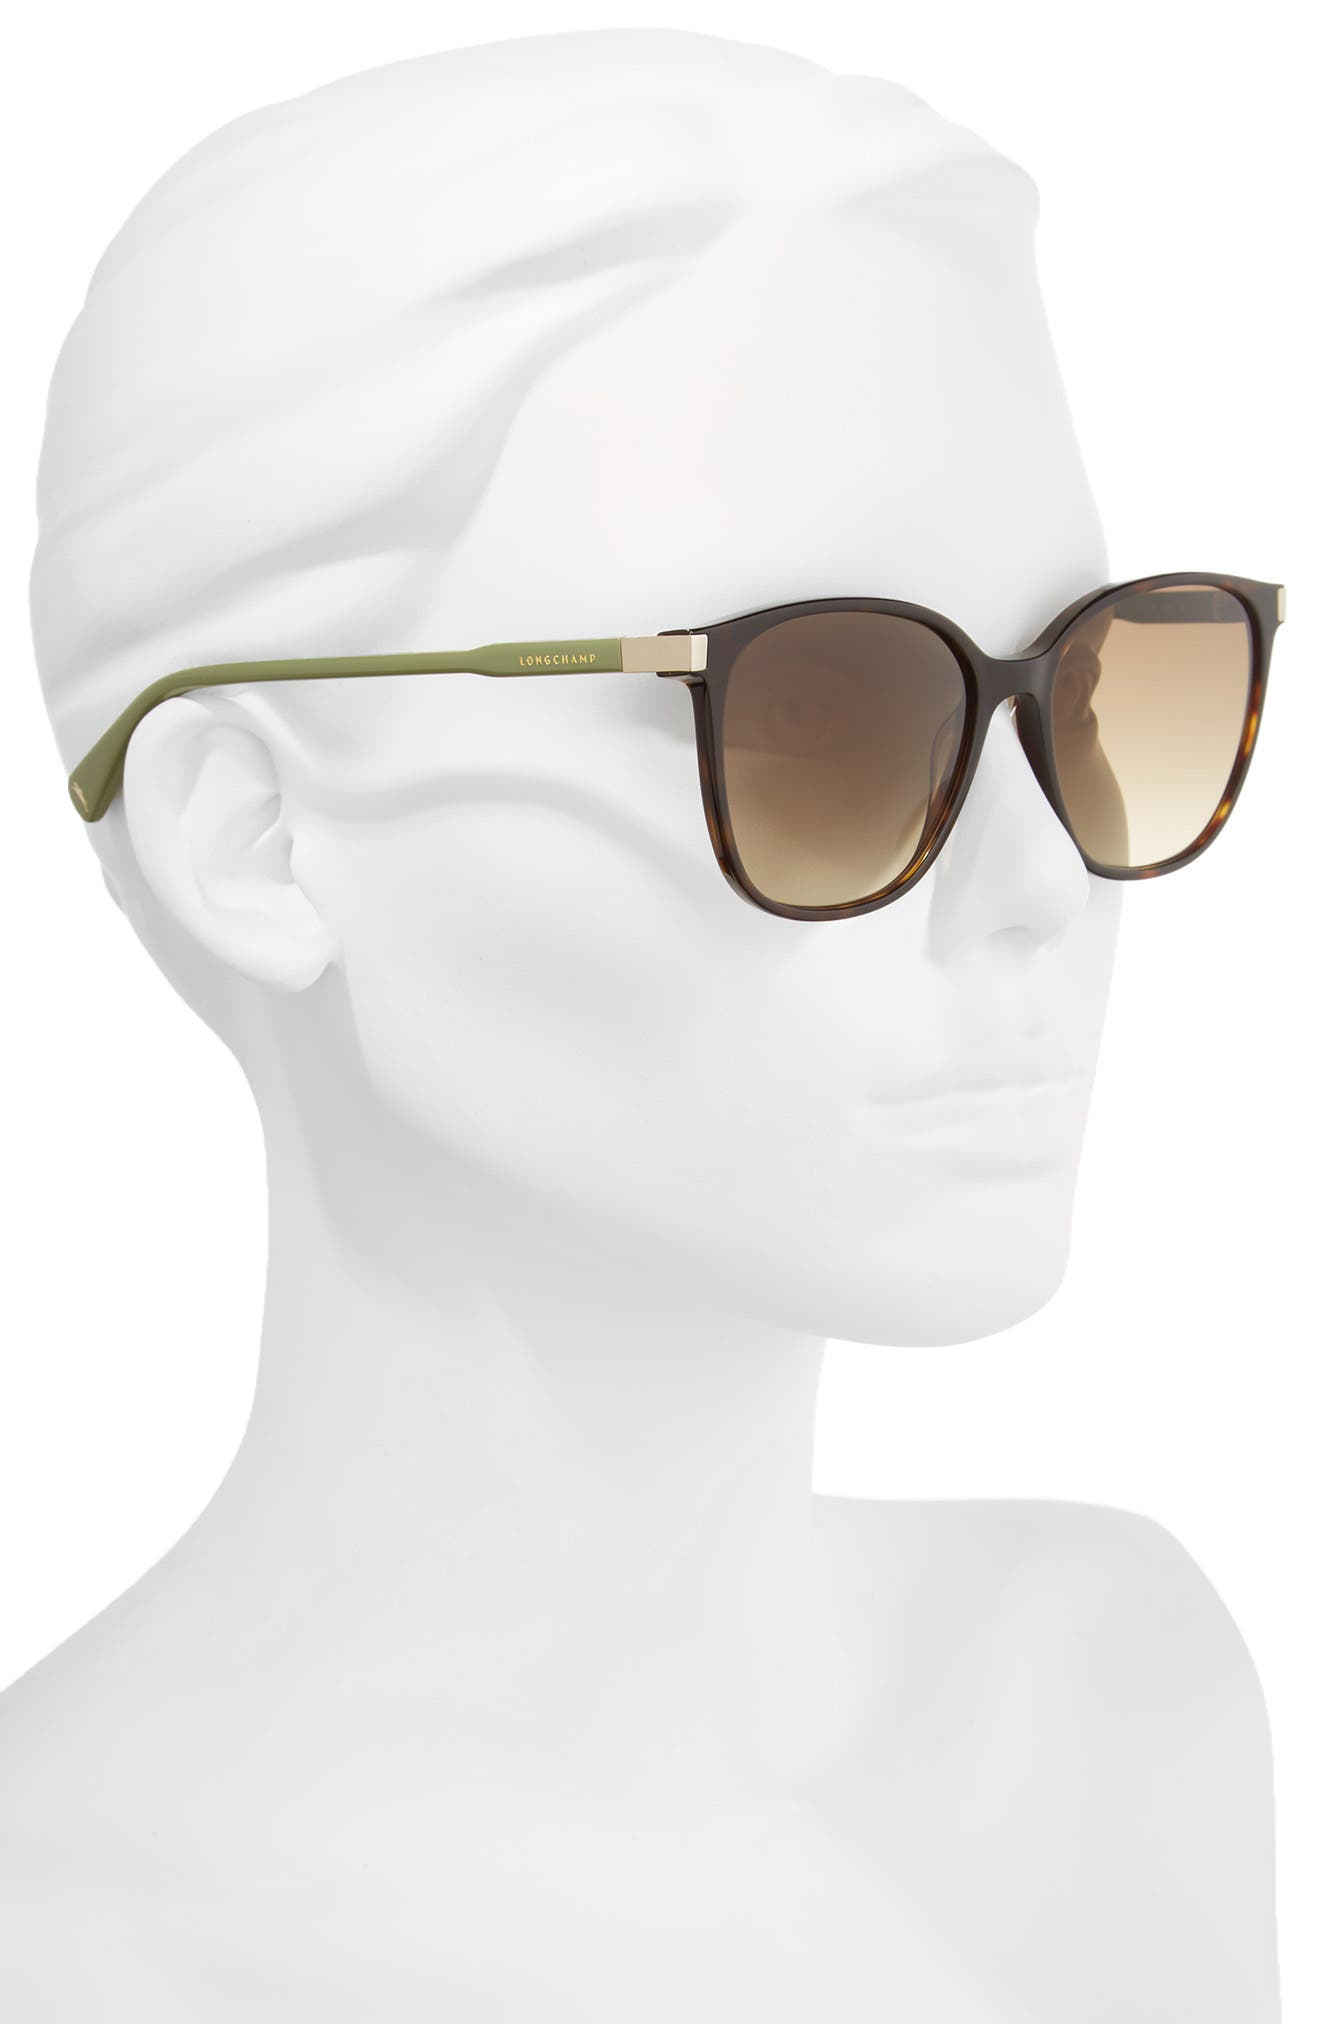 54mm Square Sunglasses,                             Alternate thumbnail 2, color,                             DARK HAVANA